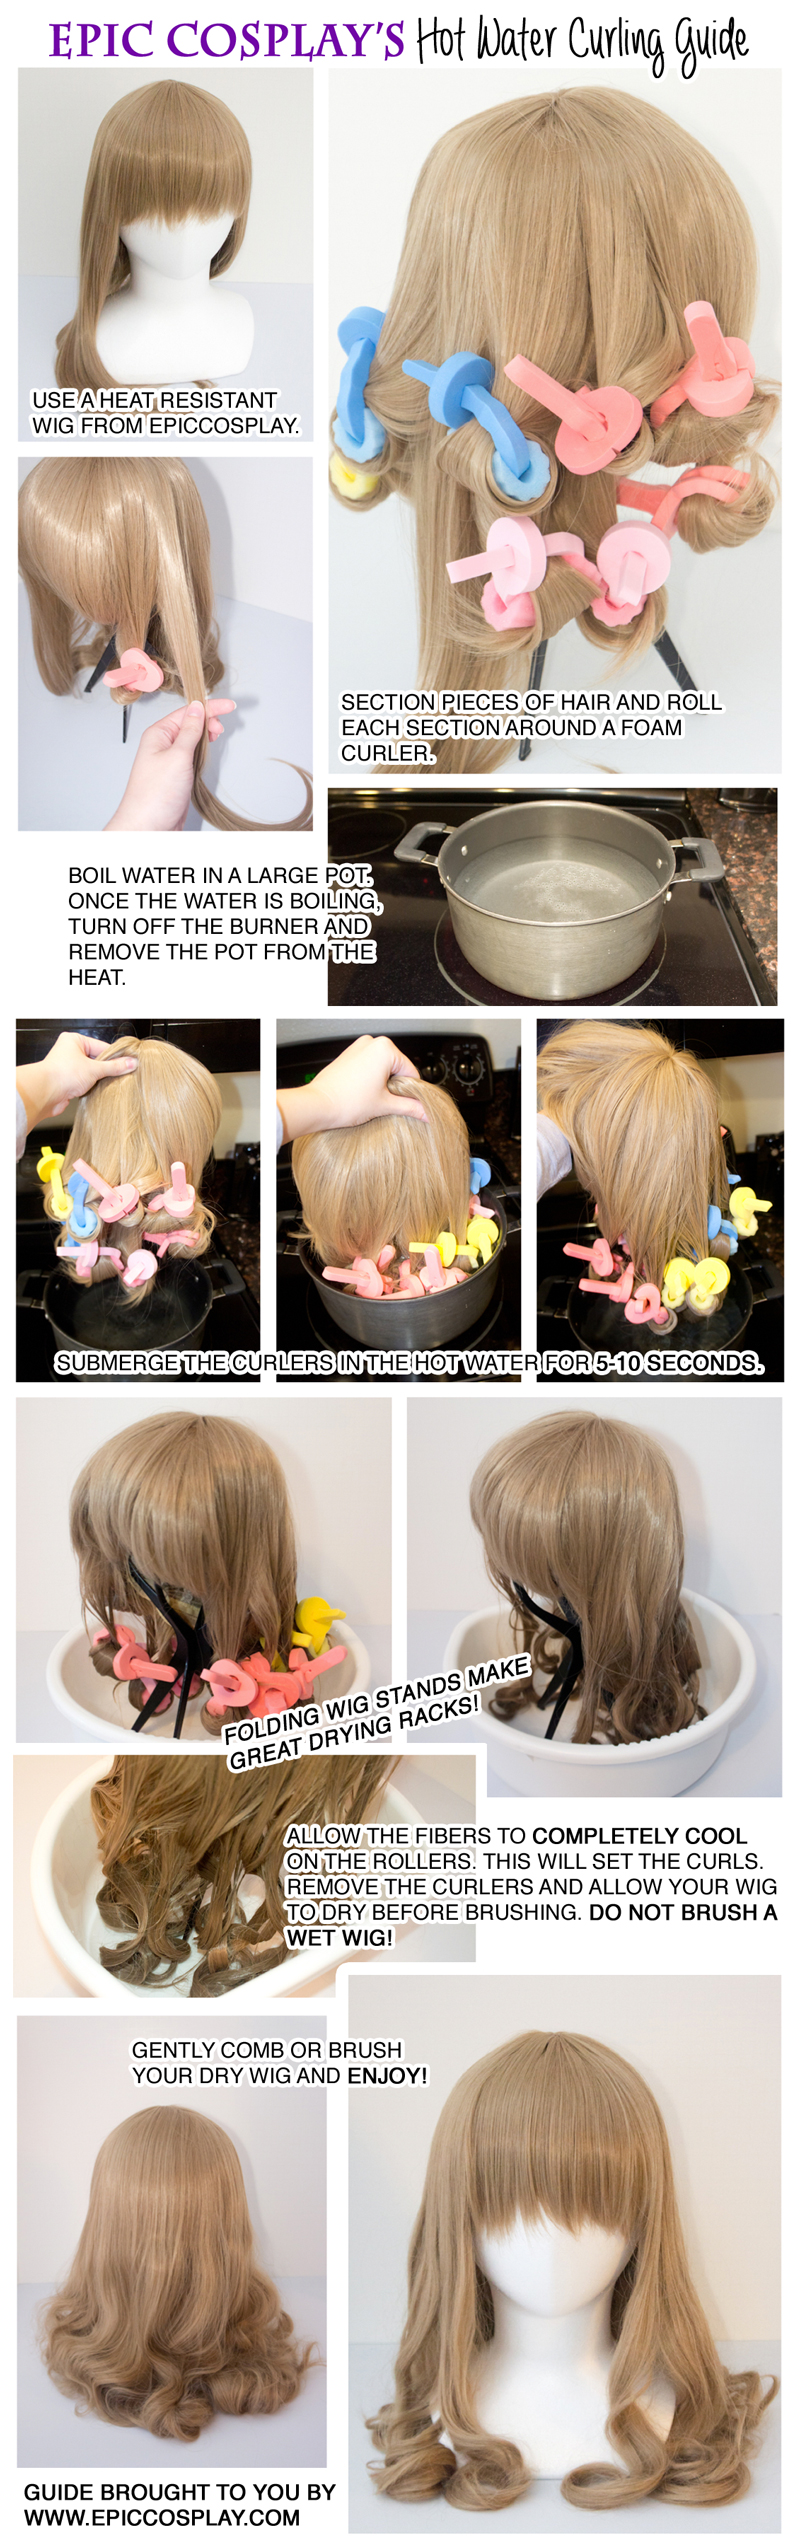 Curl Your Wig With Hot Water Epiccosplay Wigs